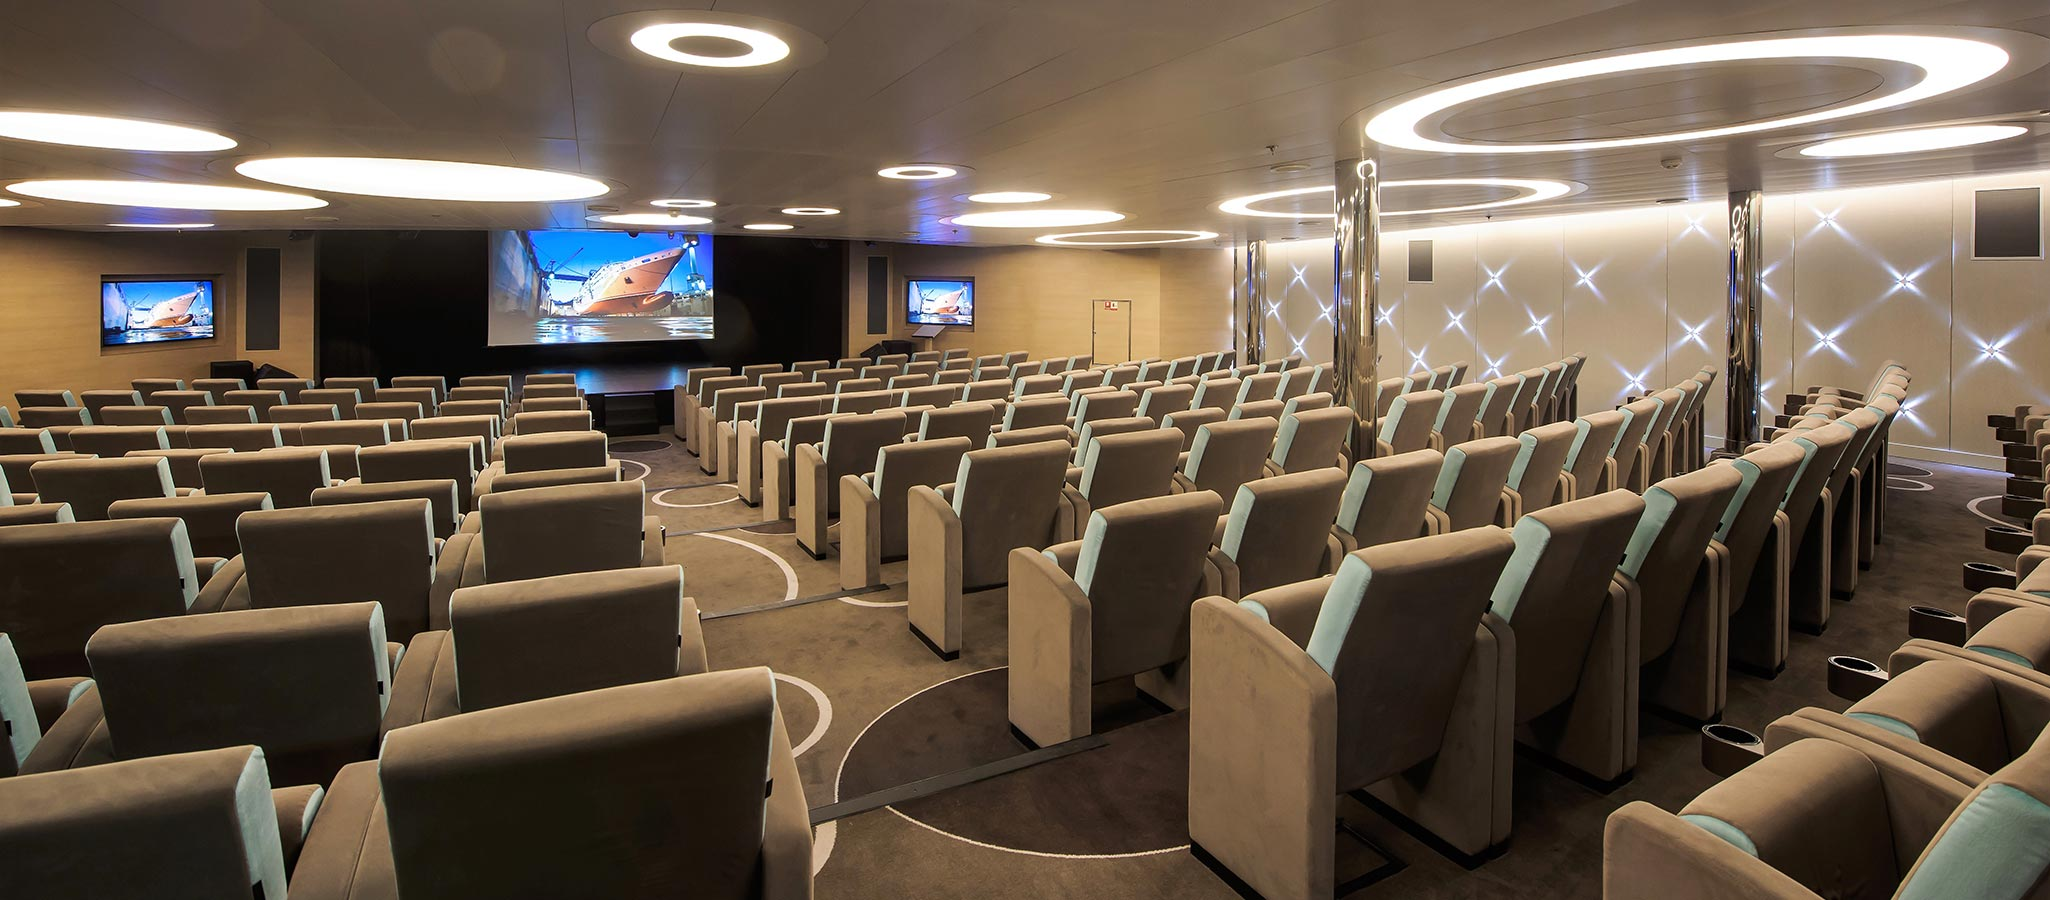 Perfectly equipped for meetings – with seats for all passengers.